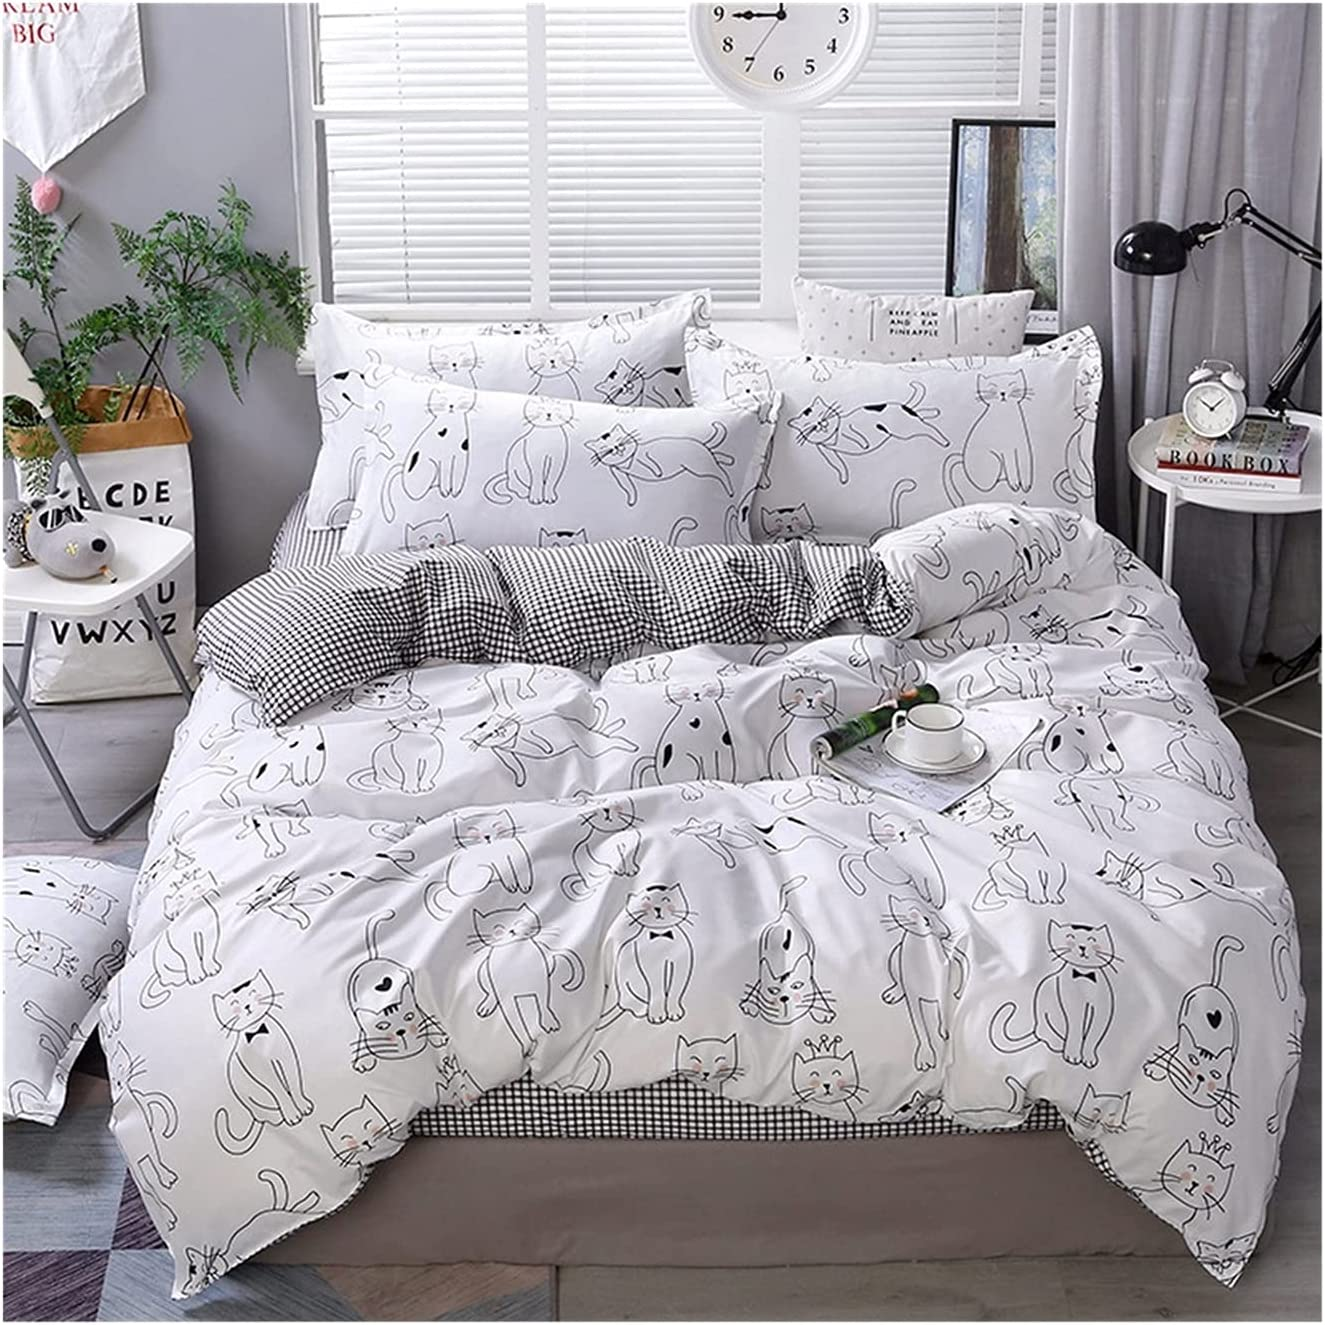 LSDJ QMDSH Home Textile Girl Bedding Al sold out. Cover Max 51% OFF Pink Peach Duvet Set